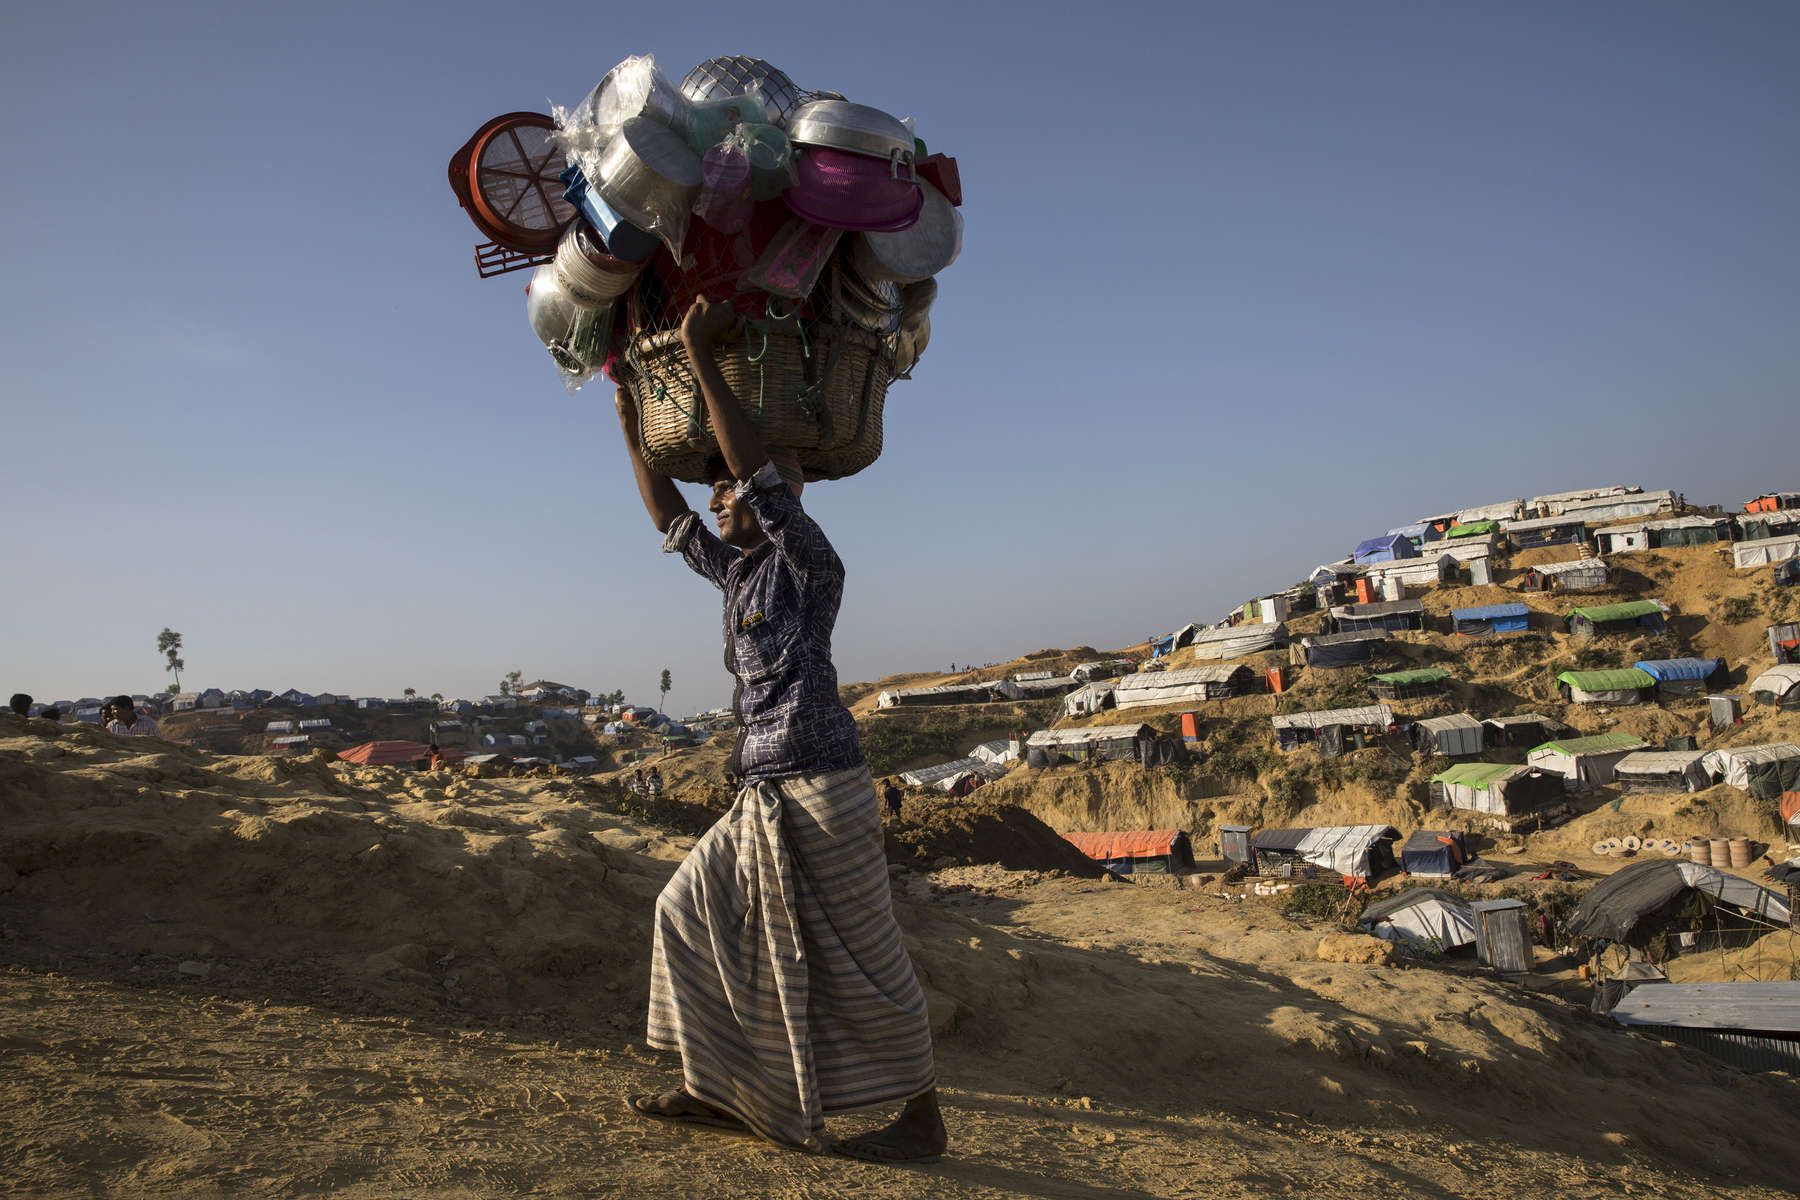 A man carries kitchen items for sale as he walks along Balukhali refugee camp.For years Buddhist majority Myanmar has struggled to deal with a deeply rooted hatred towards the Rohingya in western Rakhine state. The Muslim ethnic minority were always considered illegal immigrants from Bangladesh and denied the rights of citizenship. The refugee emergency unfolded in late August after an attack on state security forces by Rohingya insurgents, triggering a brutal military crackdown that has forced more than 650,00 of the country fleeing to neighboring Bangladesh creating the fastest cross-border exodus ever witnessed.